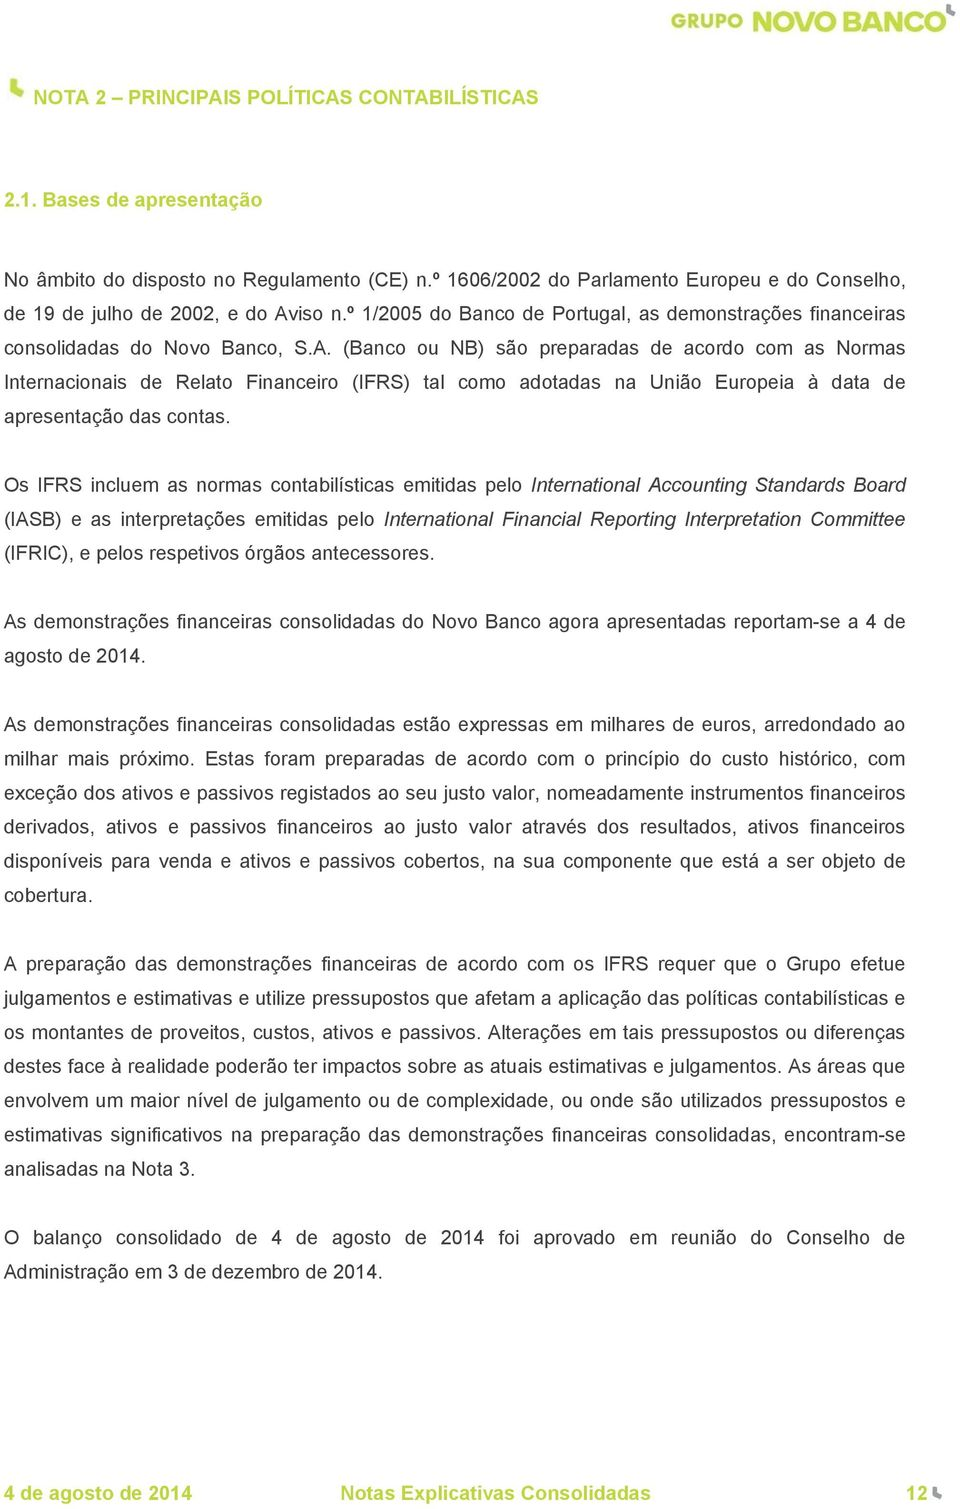 iso n.º 1/2005 do Banco de Portugal, as demonstrações financeiras consolidadas do Novo Banco, S.A.